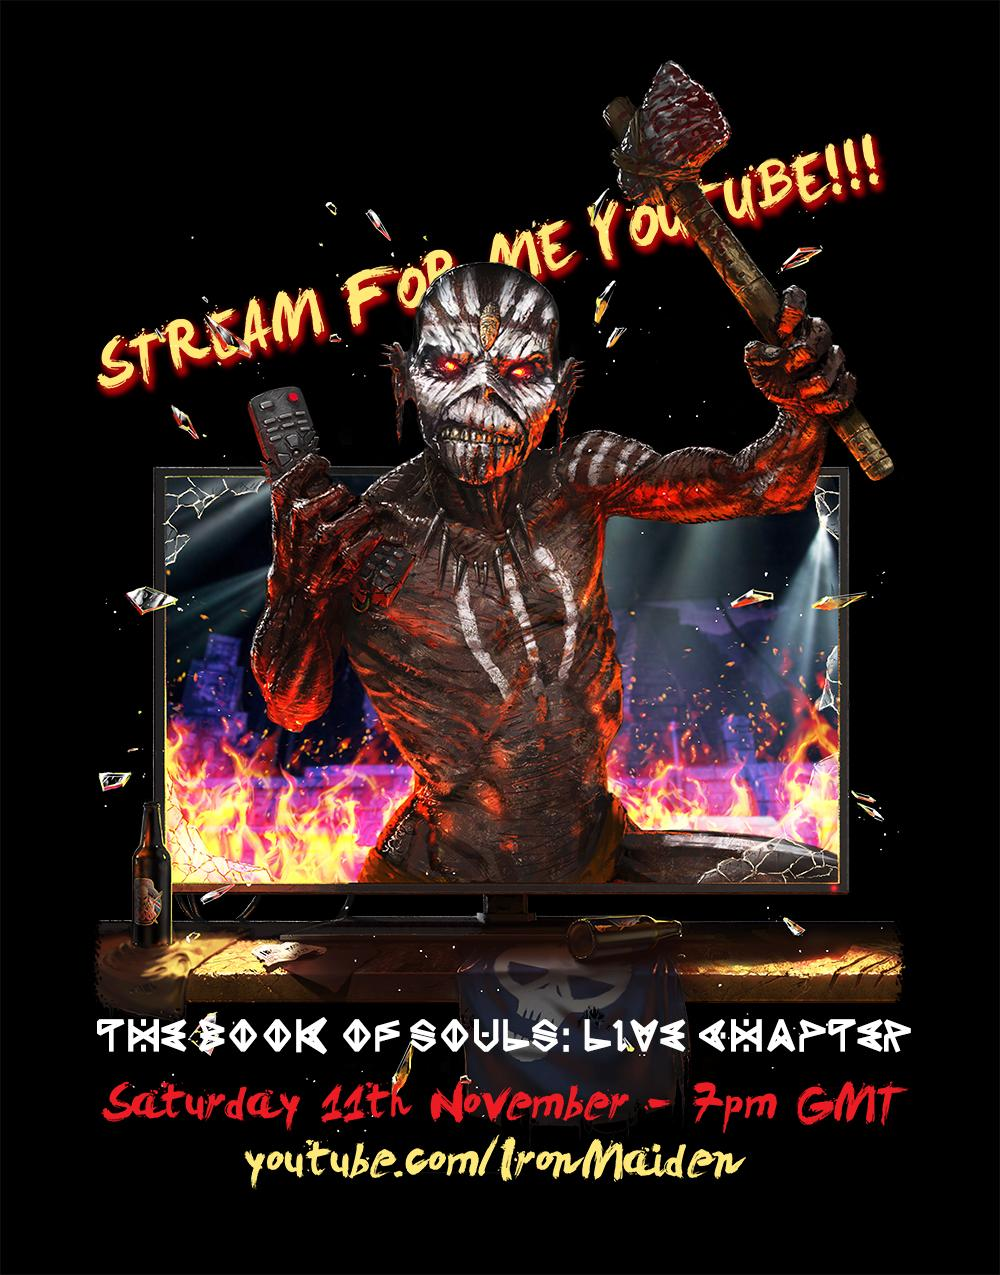 Iron Maiden YouTube stream